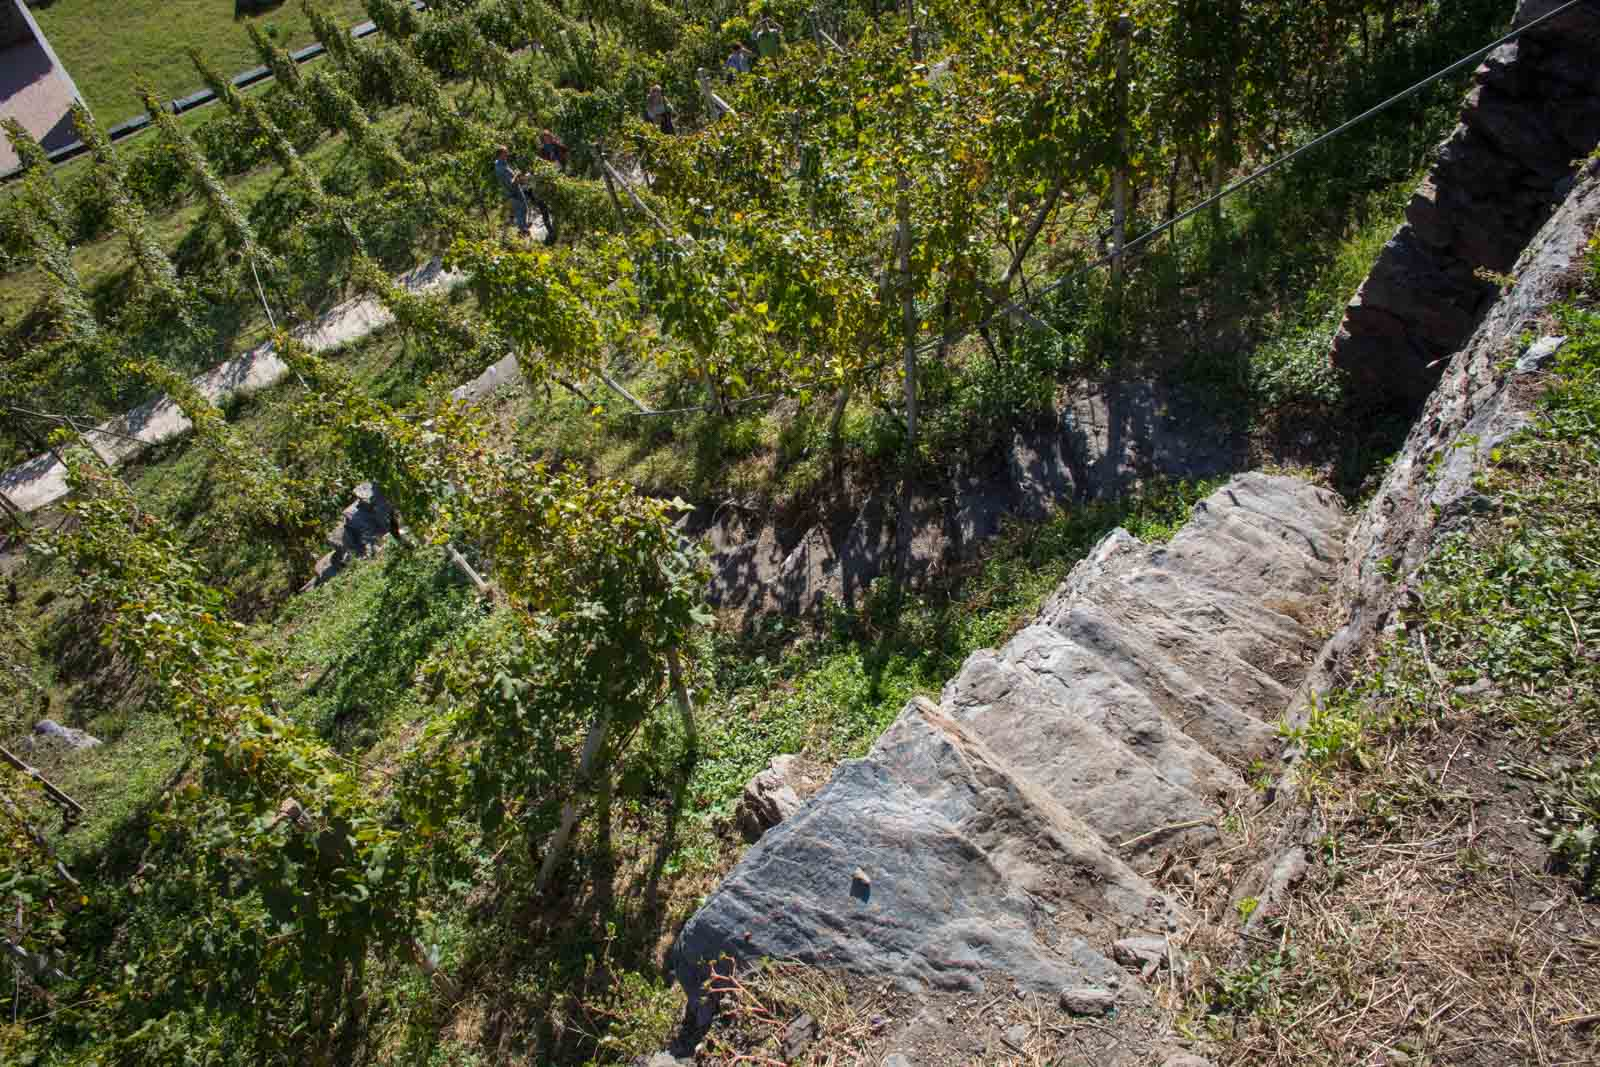 A typical vineyard in Valtellina might inspire thoughts of M.C. Escher. ©Kevin Day/Opening a Bottle